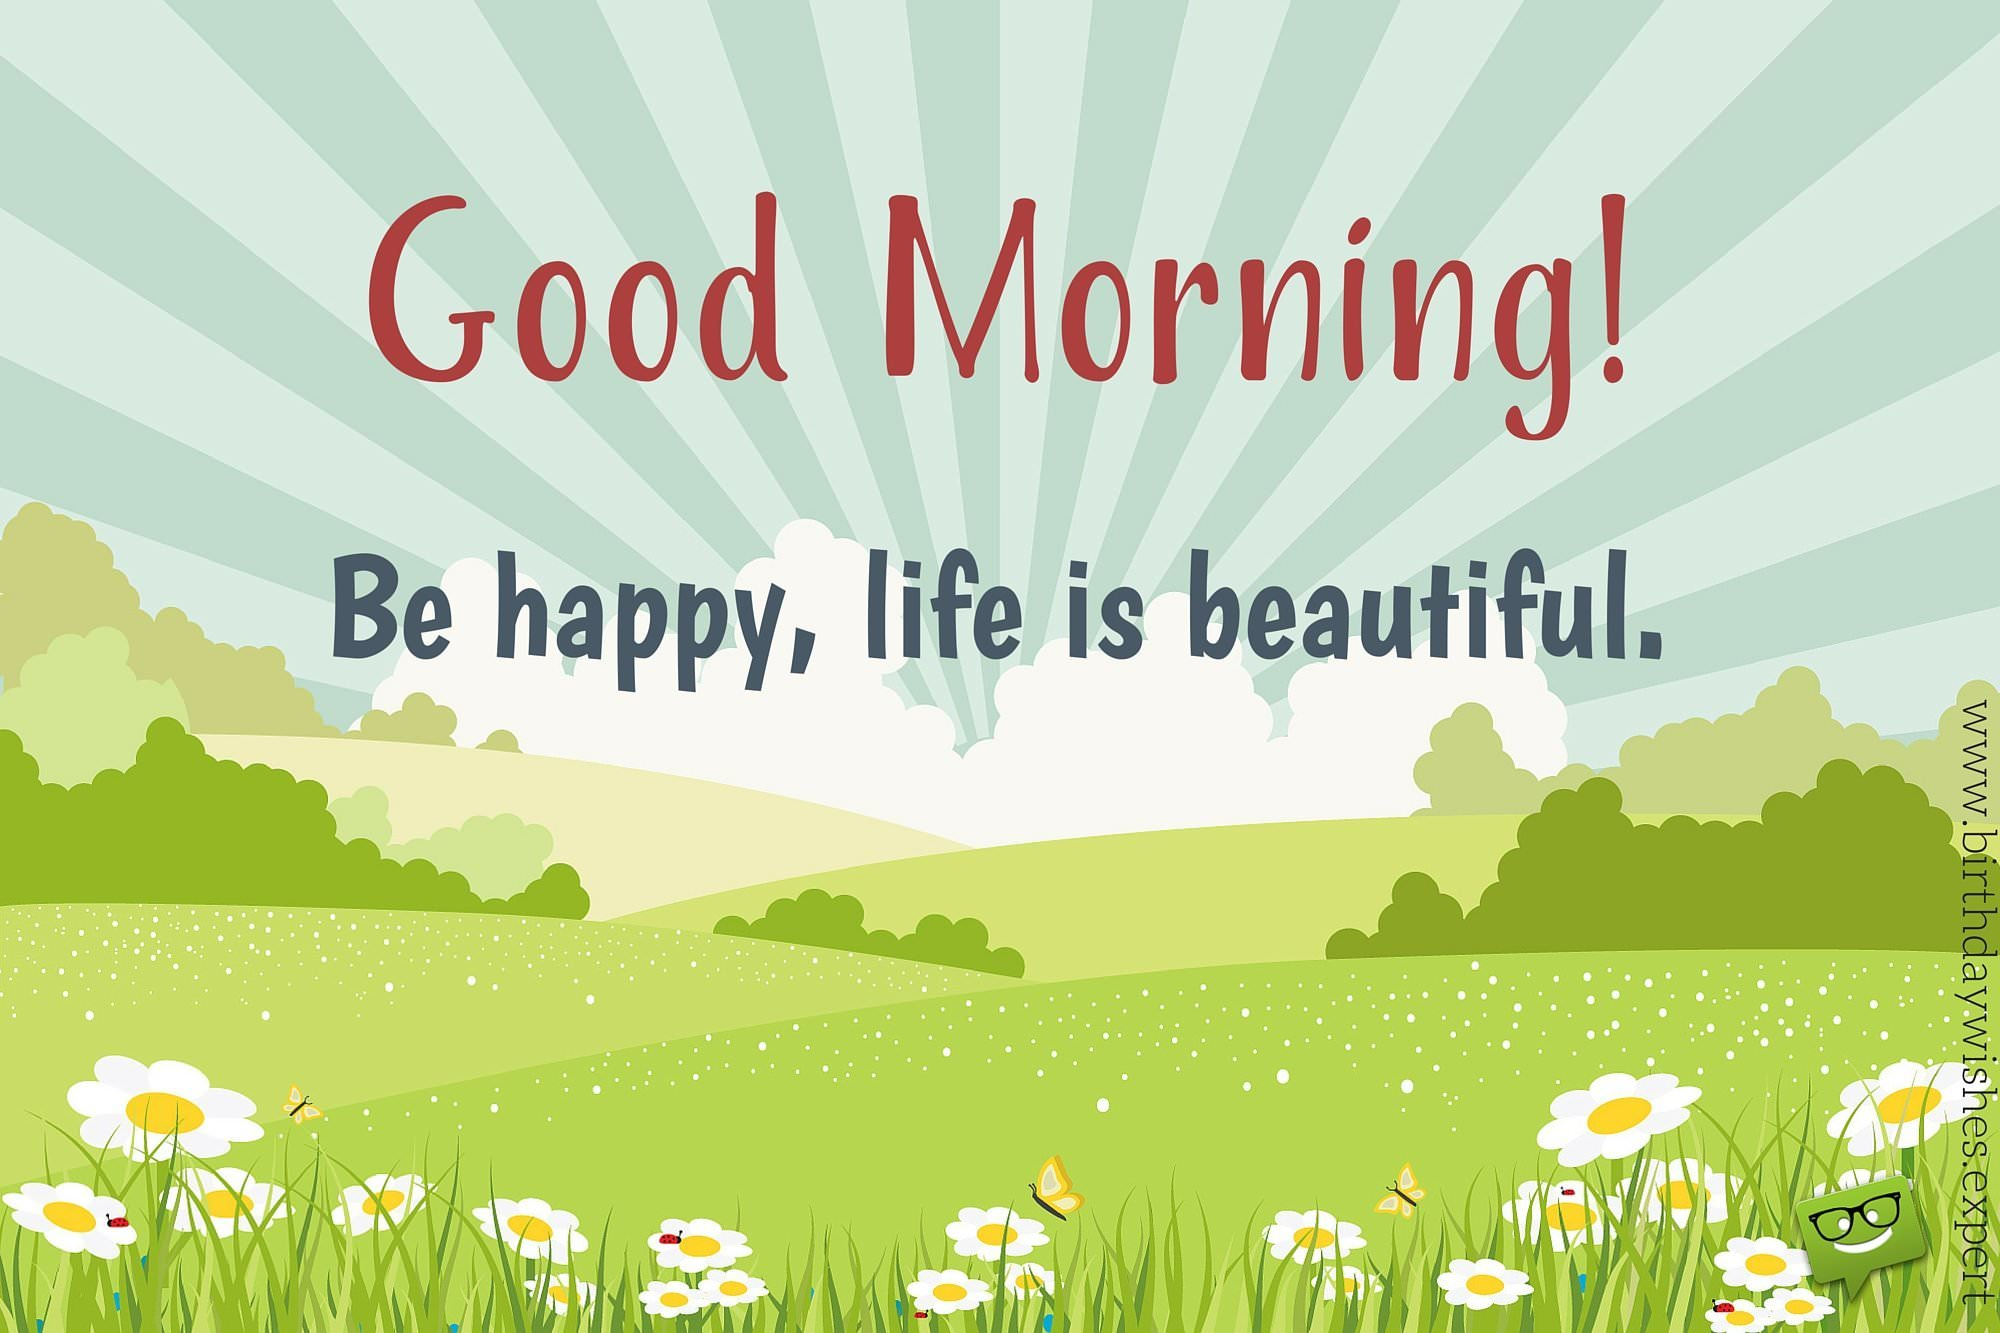 Good Morning Happy Life Quotes: Positive Good Morning Quotes